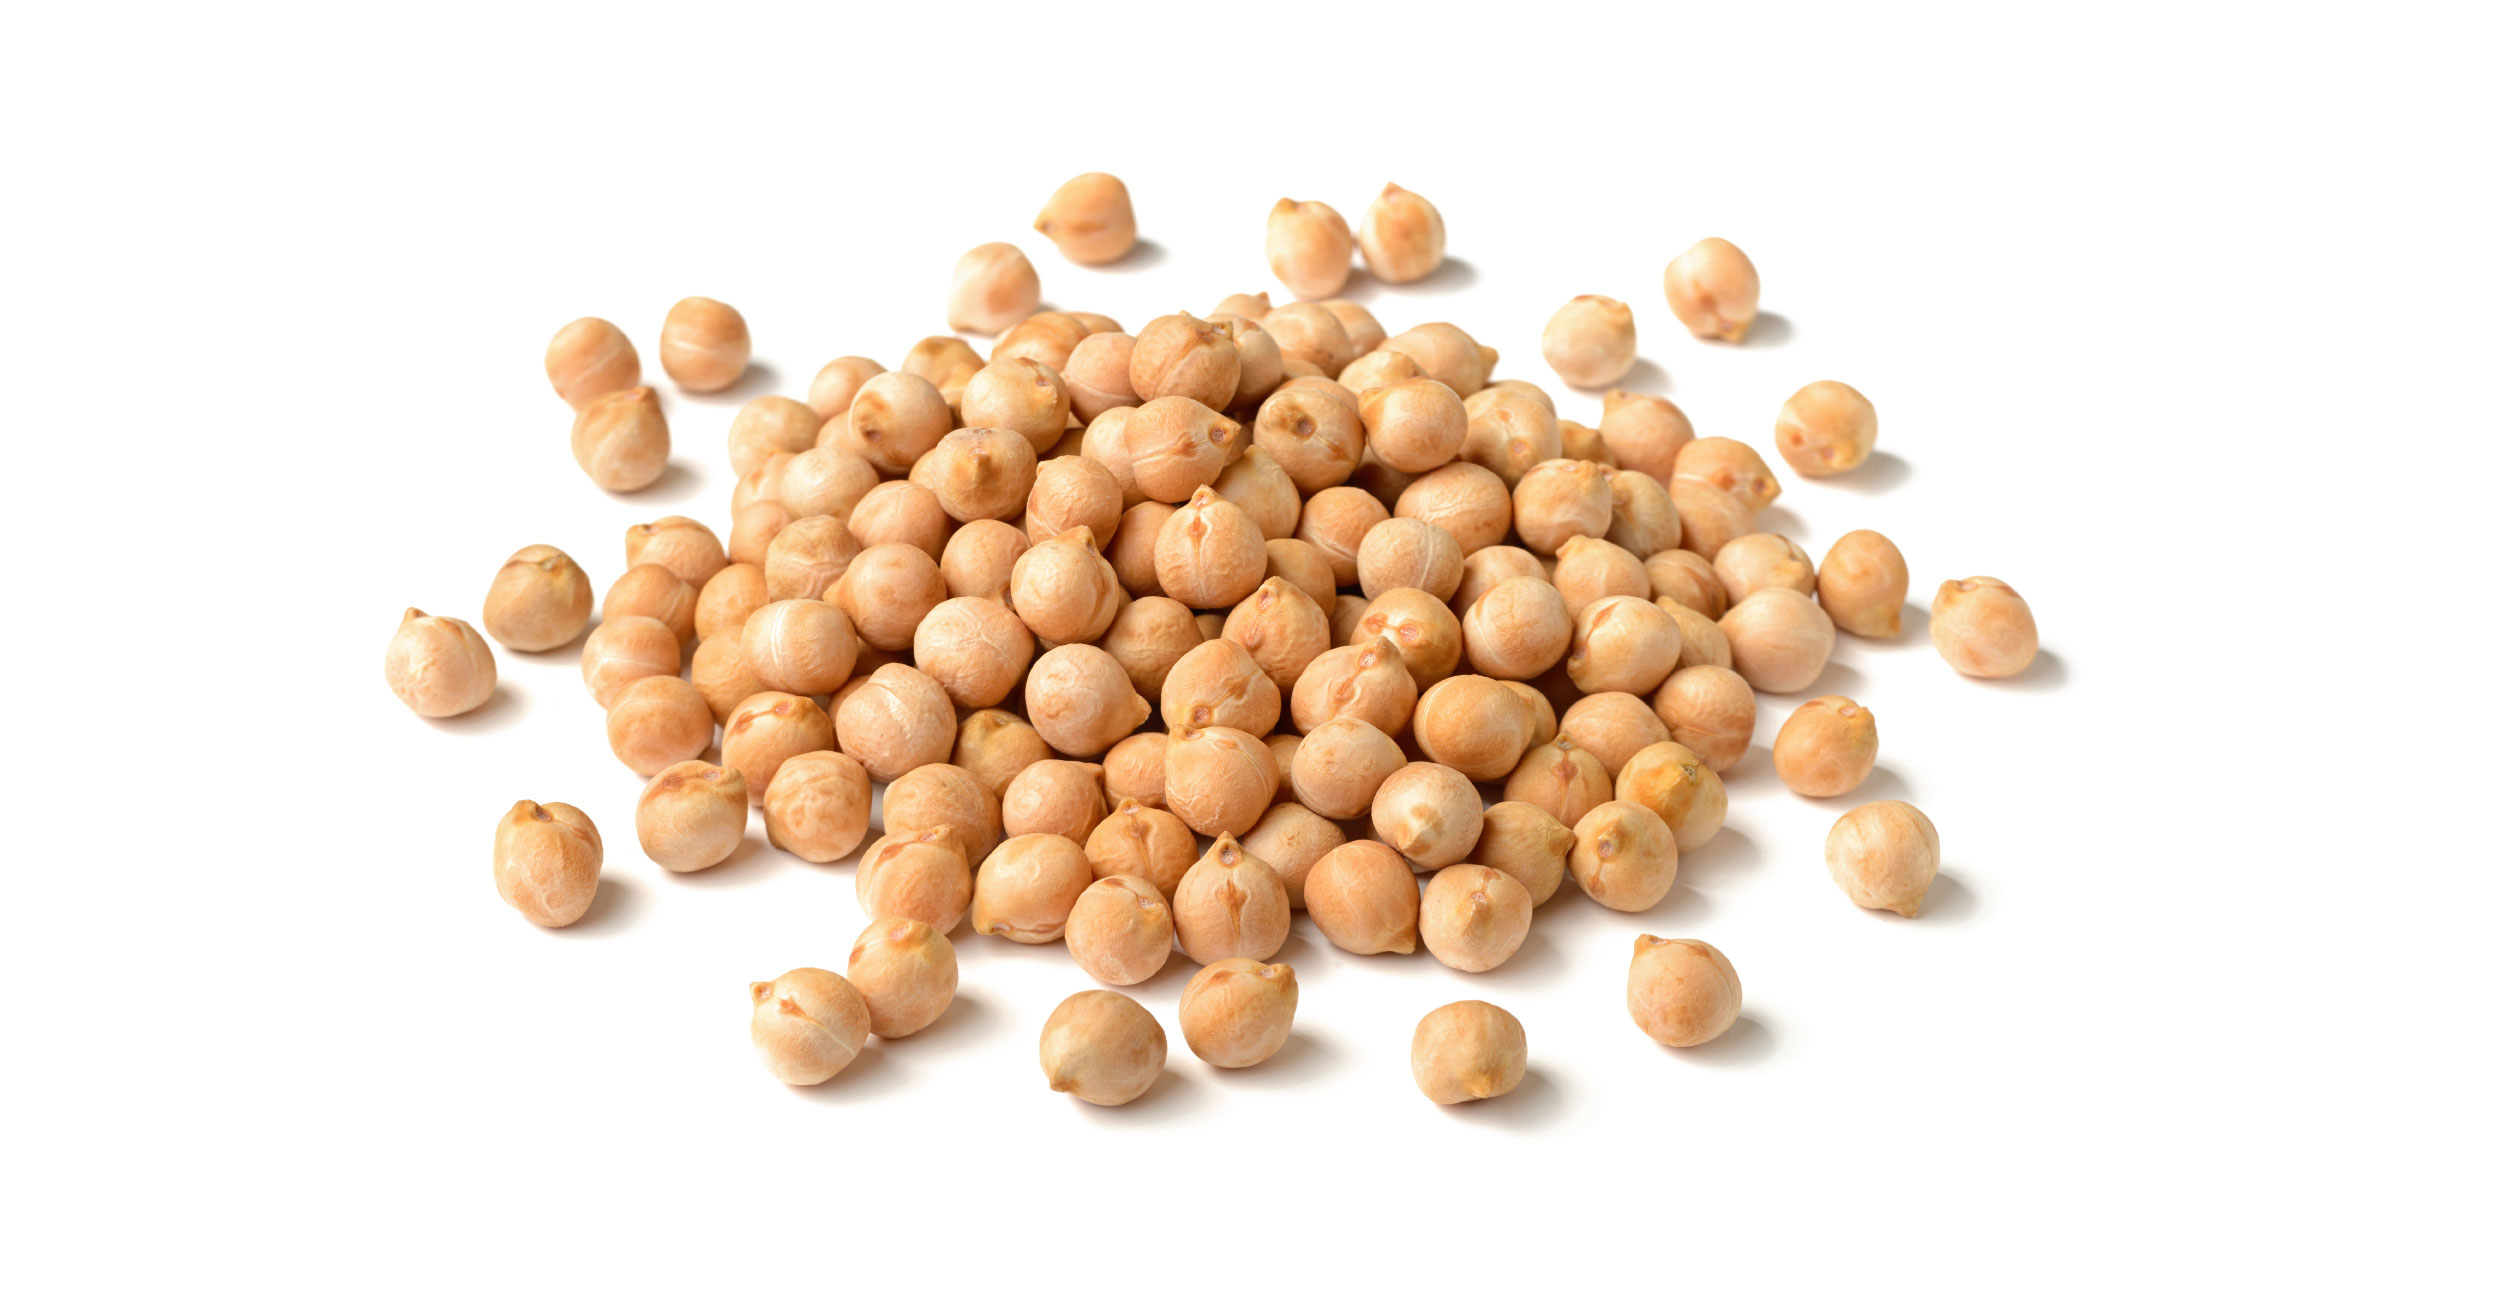 Chickpeas are a healthy plant-based superfood. Garbanzo beans are a source of vegan protein.